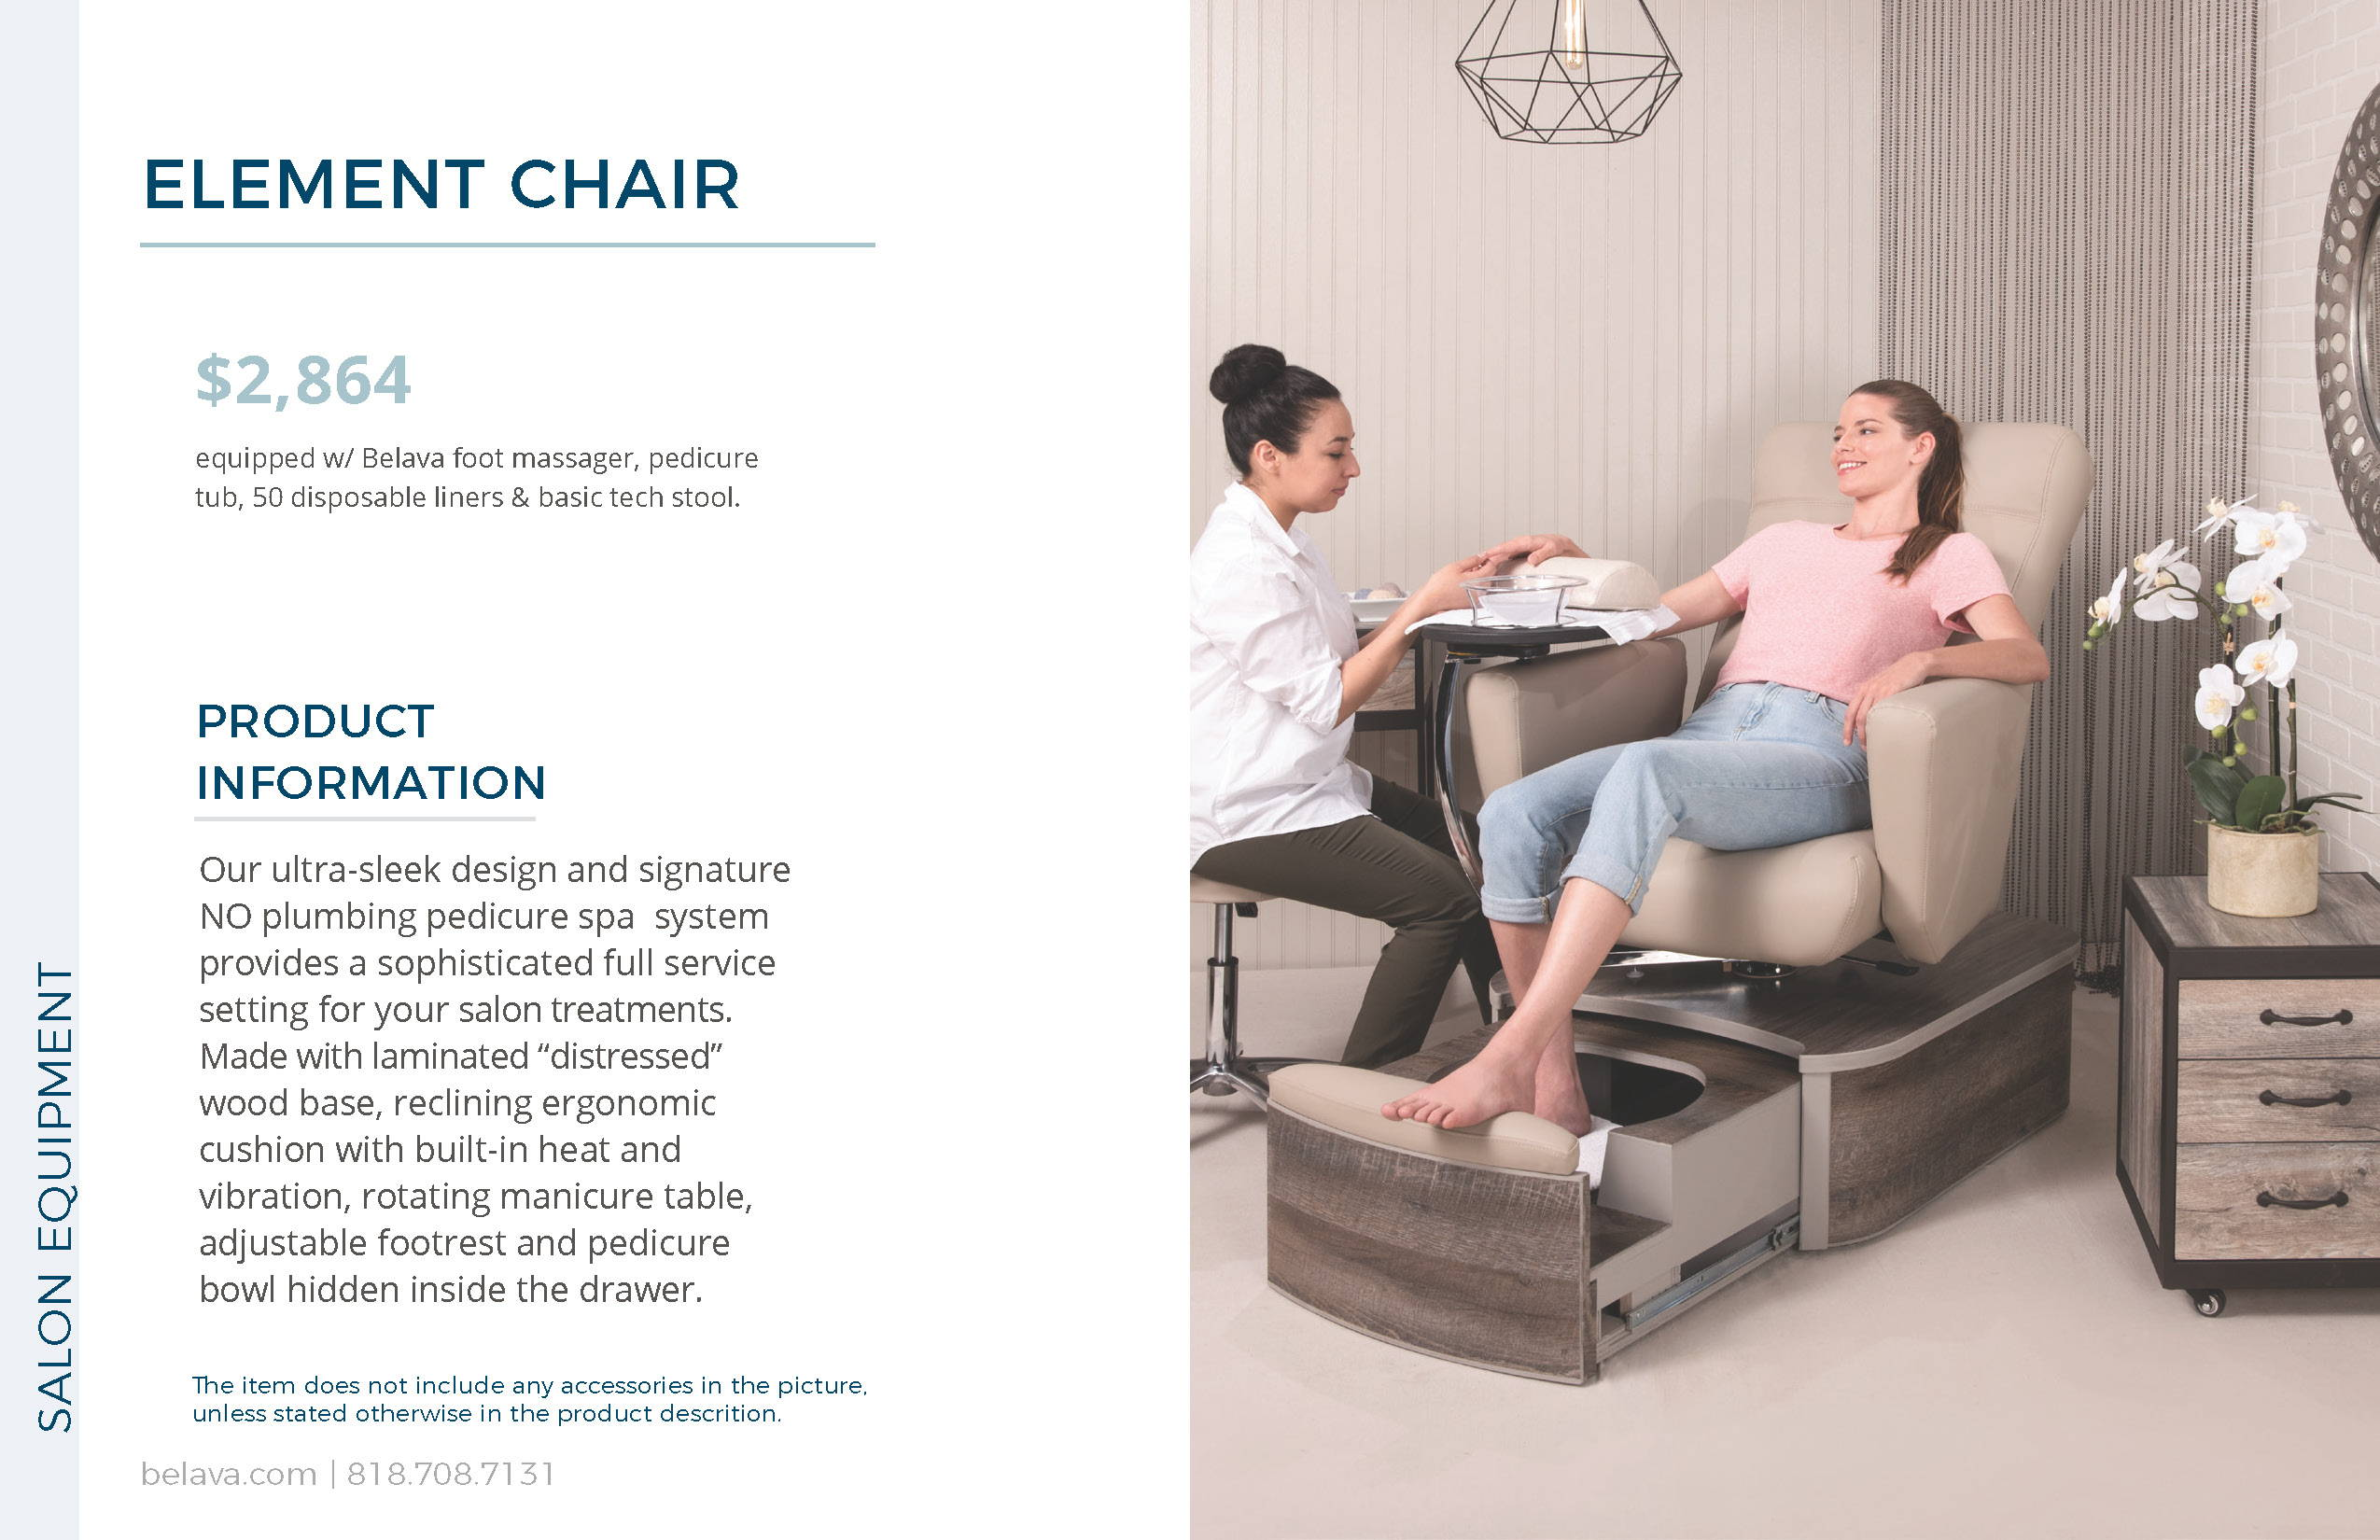 Element Pedicure Chair by Belava